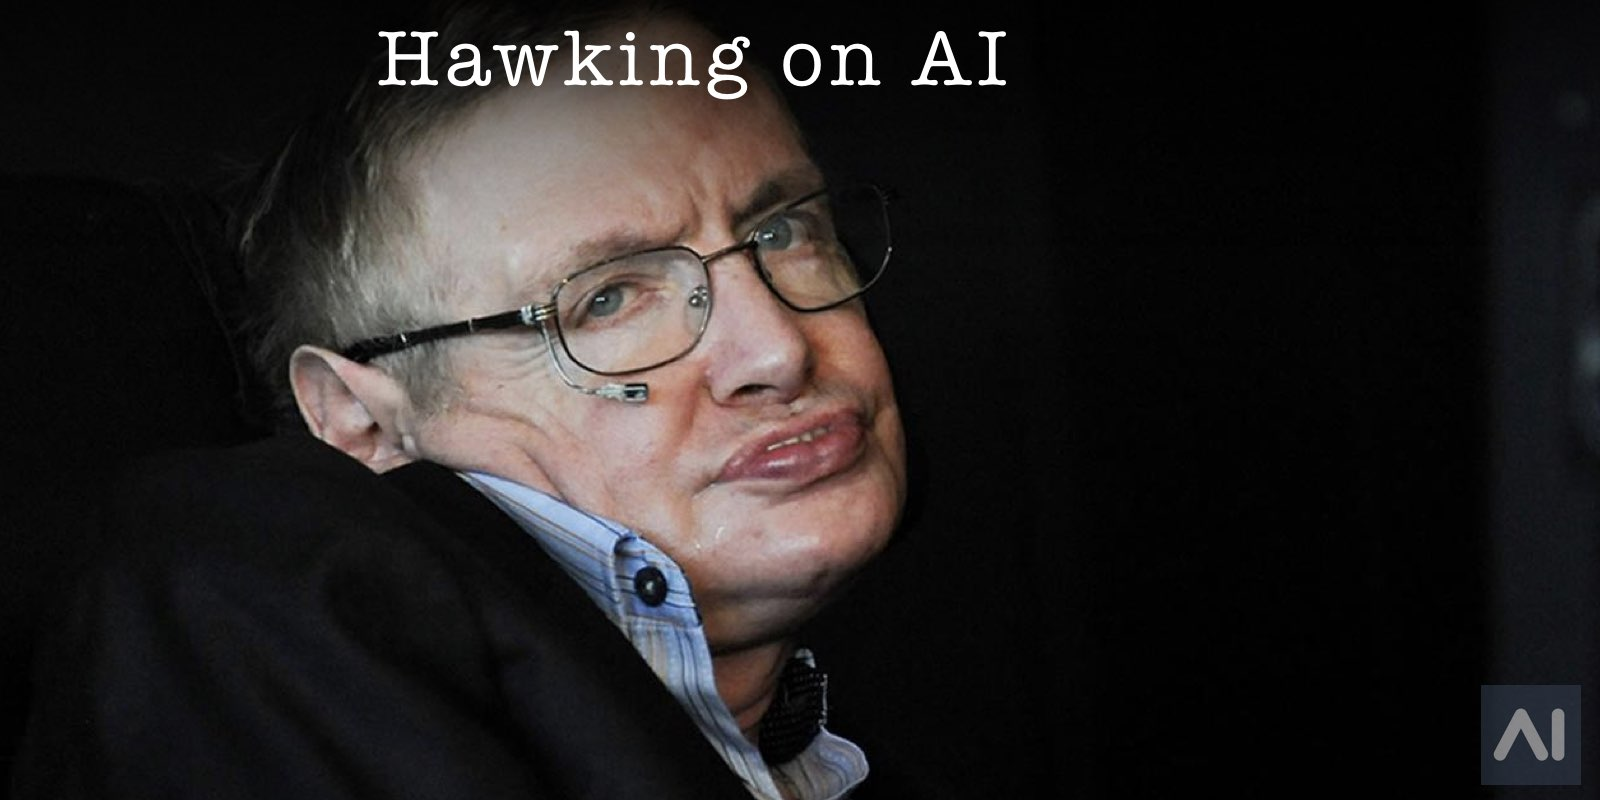 Prof Hawking on Artificial Intelligence